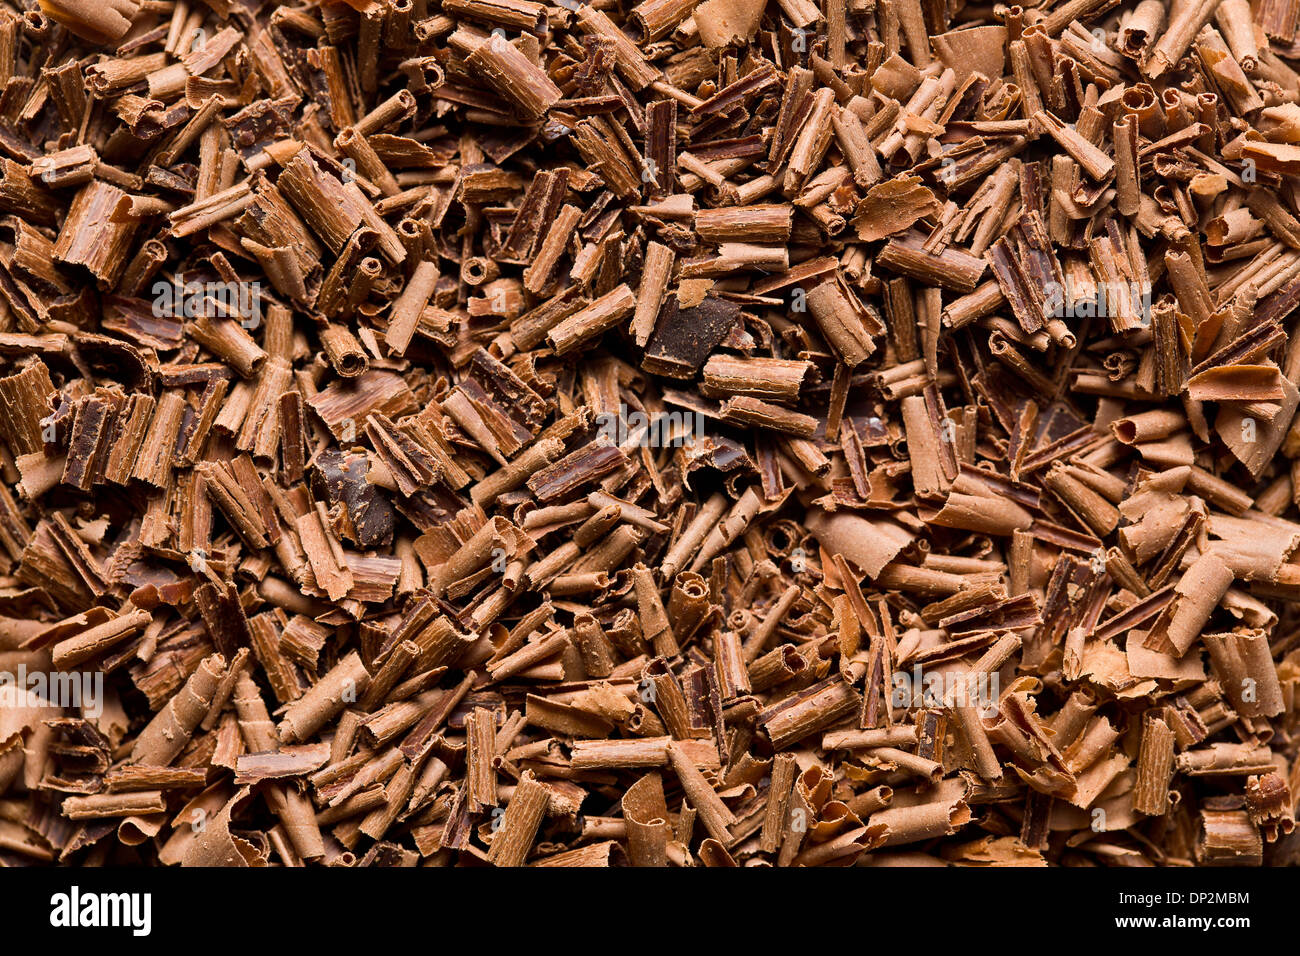 La texture des copeaux de chocolat au lait Photo Stock